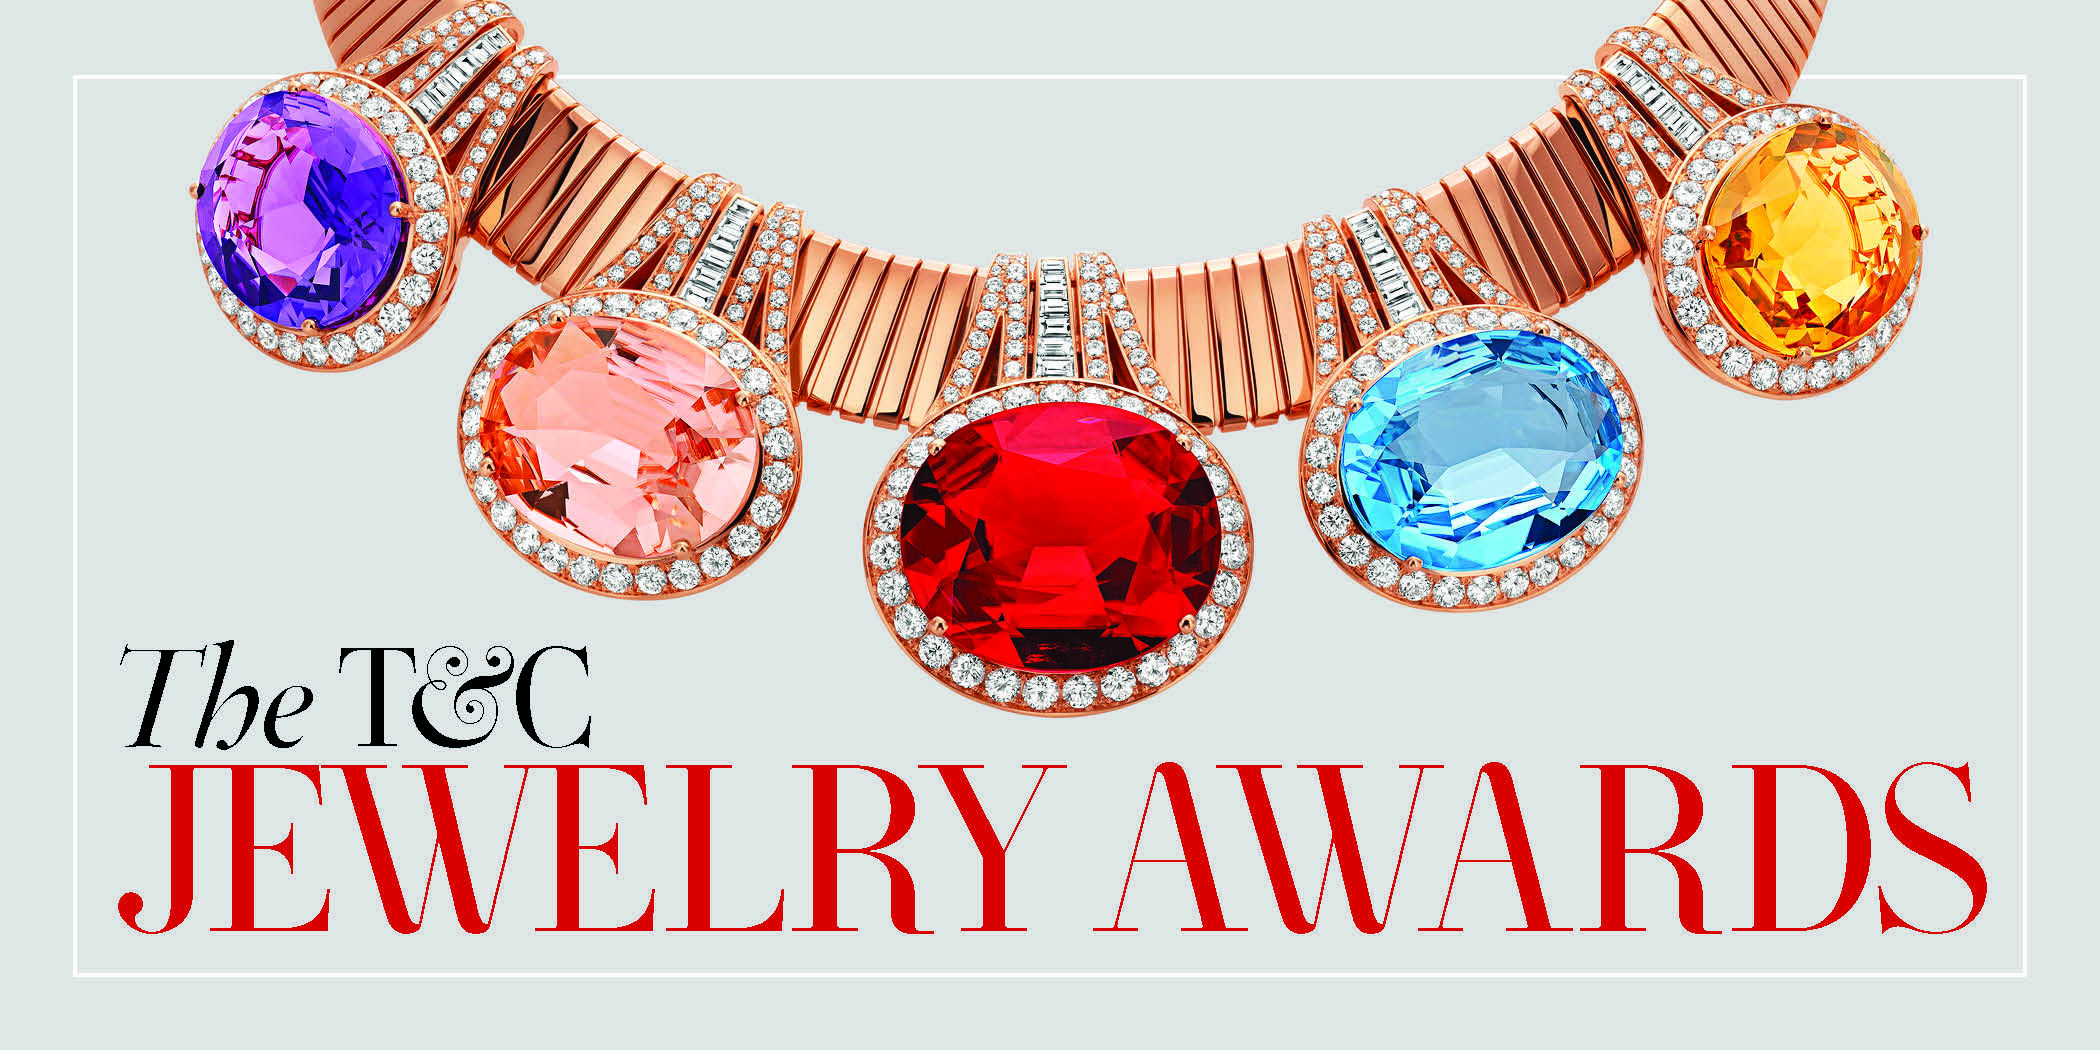 f1d8c89b181 The Town and Country Jewelry Awards Honoring the Jewelers and Jewelry  Champions of 2018